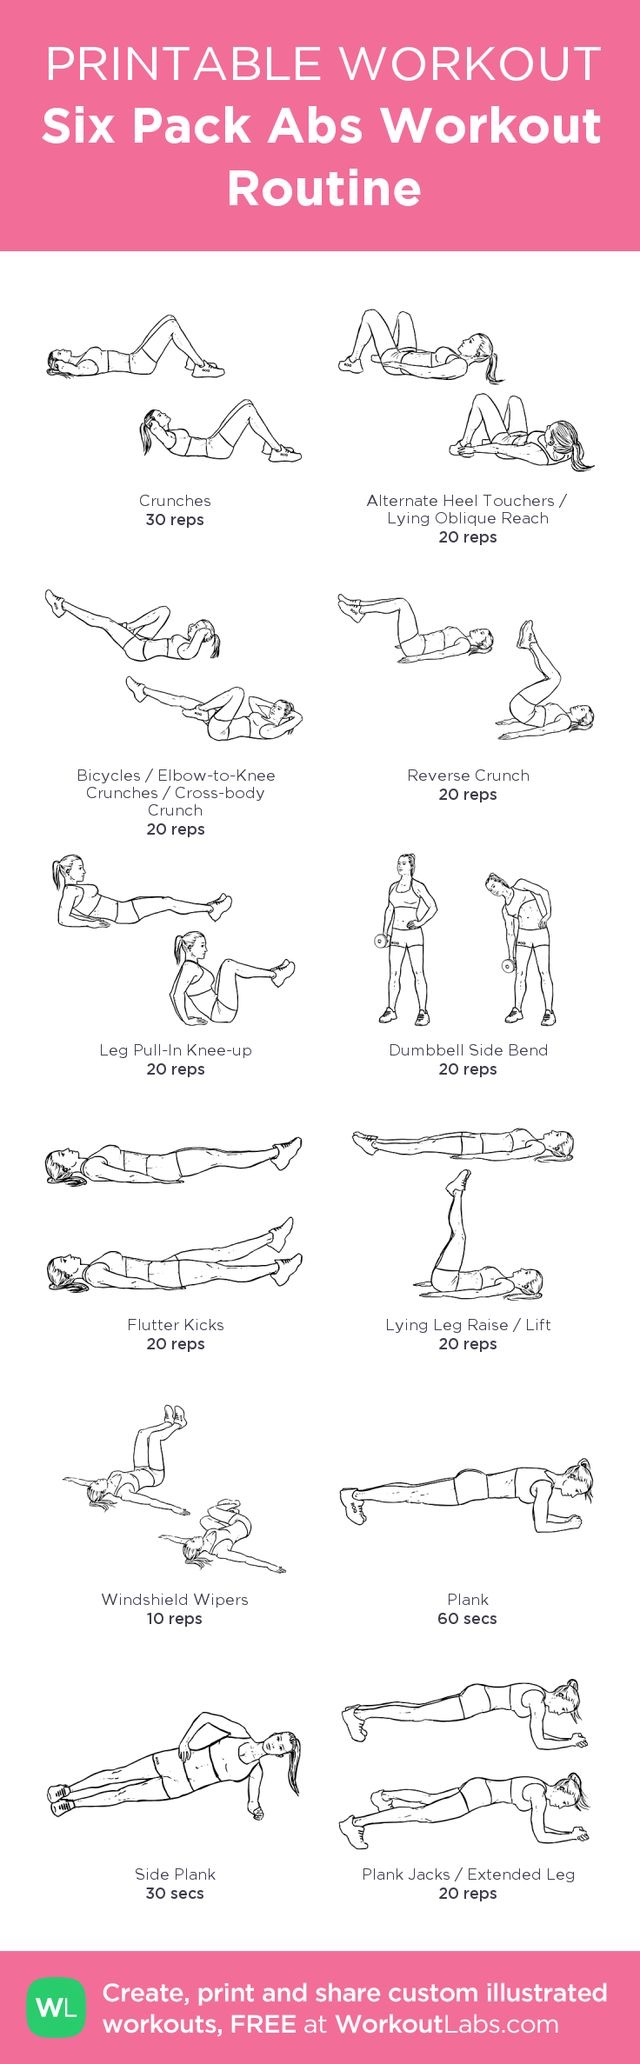 Free Ab Workout Plans Mh Summer Sixpack Challenge The Dumbbell Circuit Posted By Advancedweightlosstips Com Workouts